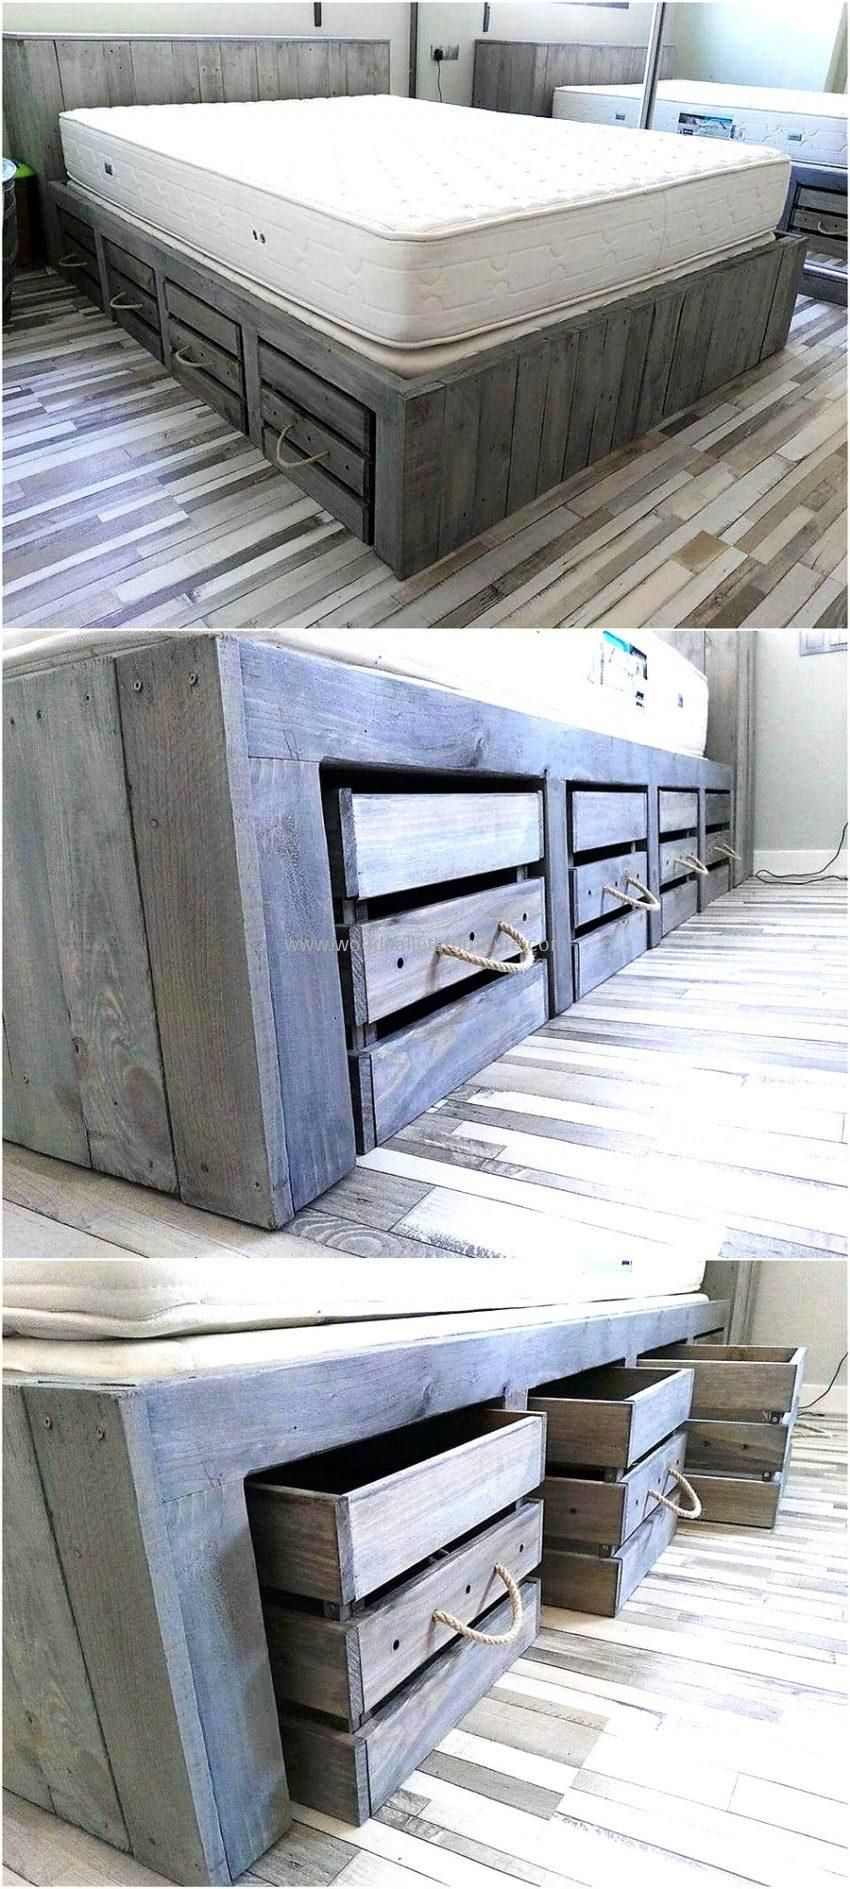 Rustic Look Giant Pallet Bed with Storage | Pinterest | Camas, Cama ...